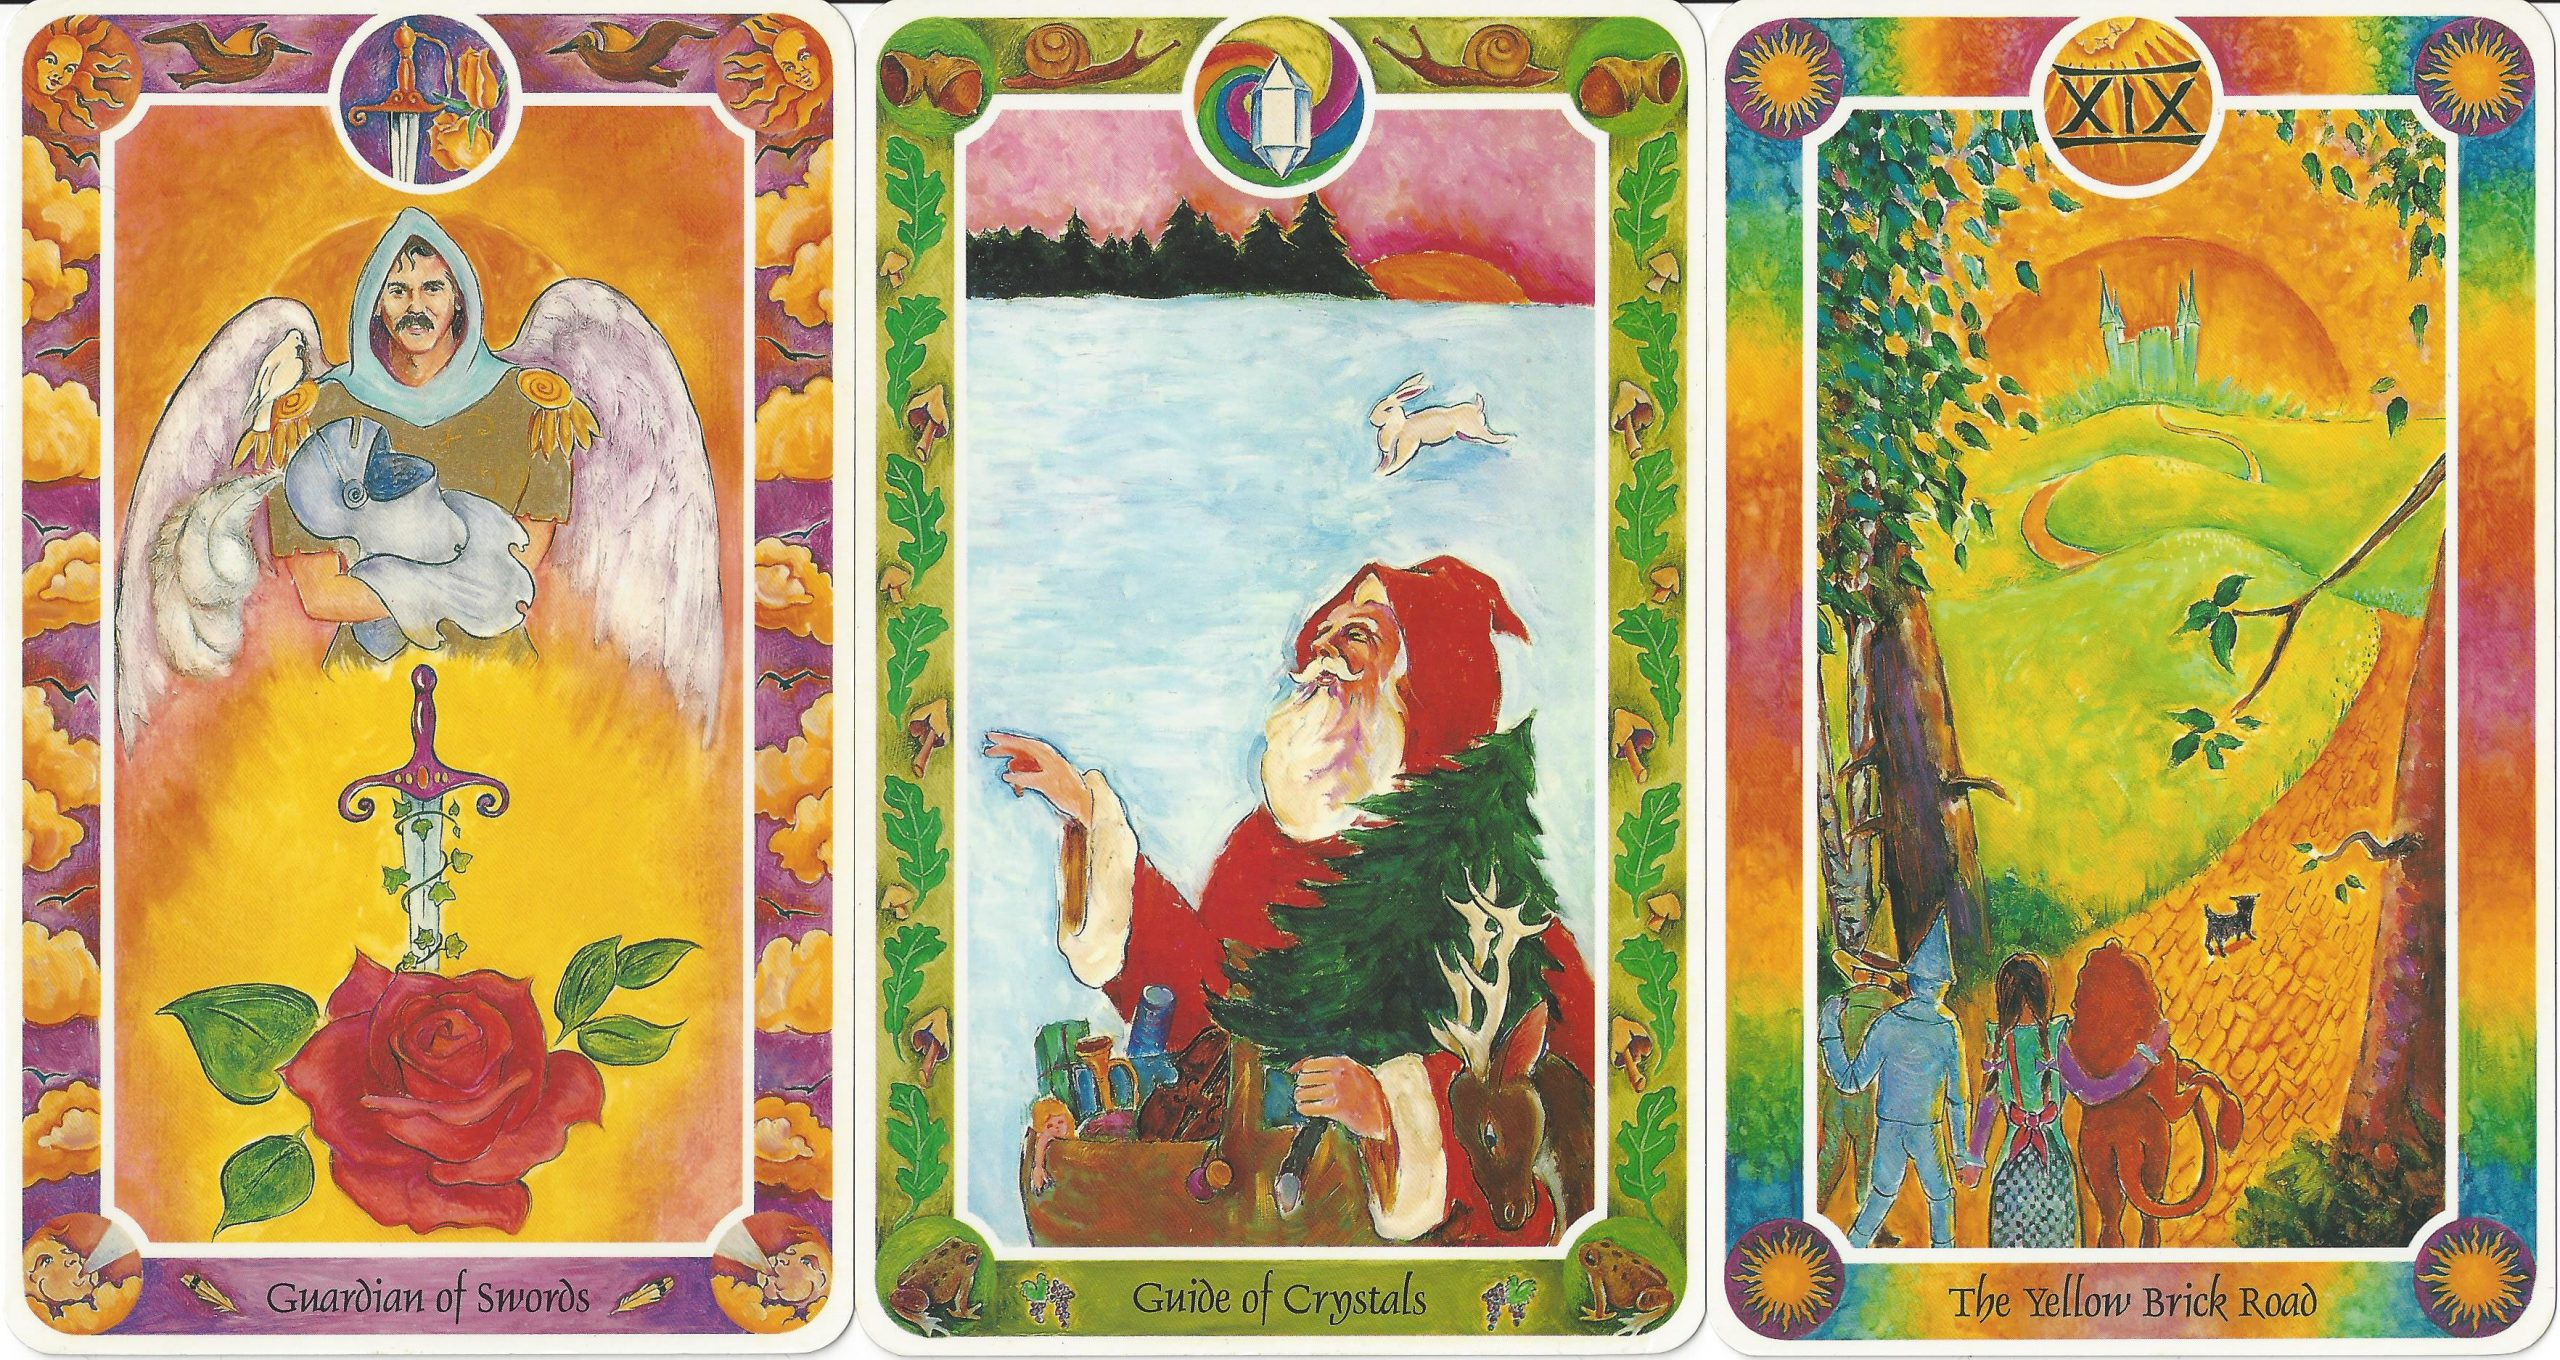 """""""Guardian of Swords,"""" """"Guide of Crystals,"""" and """"XIX The Yellow Brick Road"""" (The Sun) from Inner Child Cards by Isha Lerner, Mark Lerner, Christopher Guilfoil, Bear & Company, 1992."""